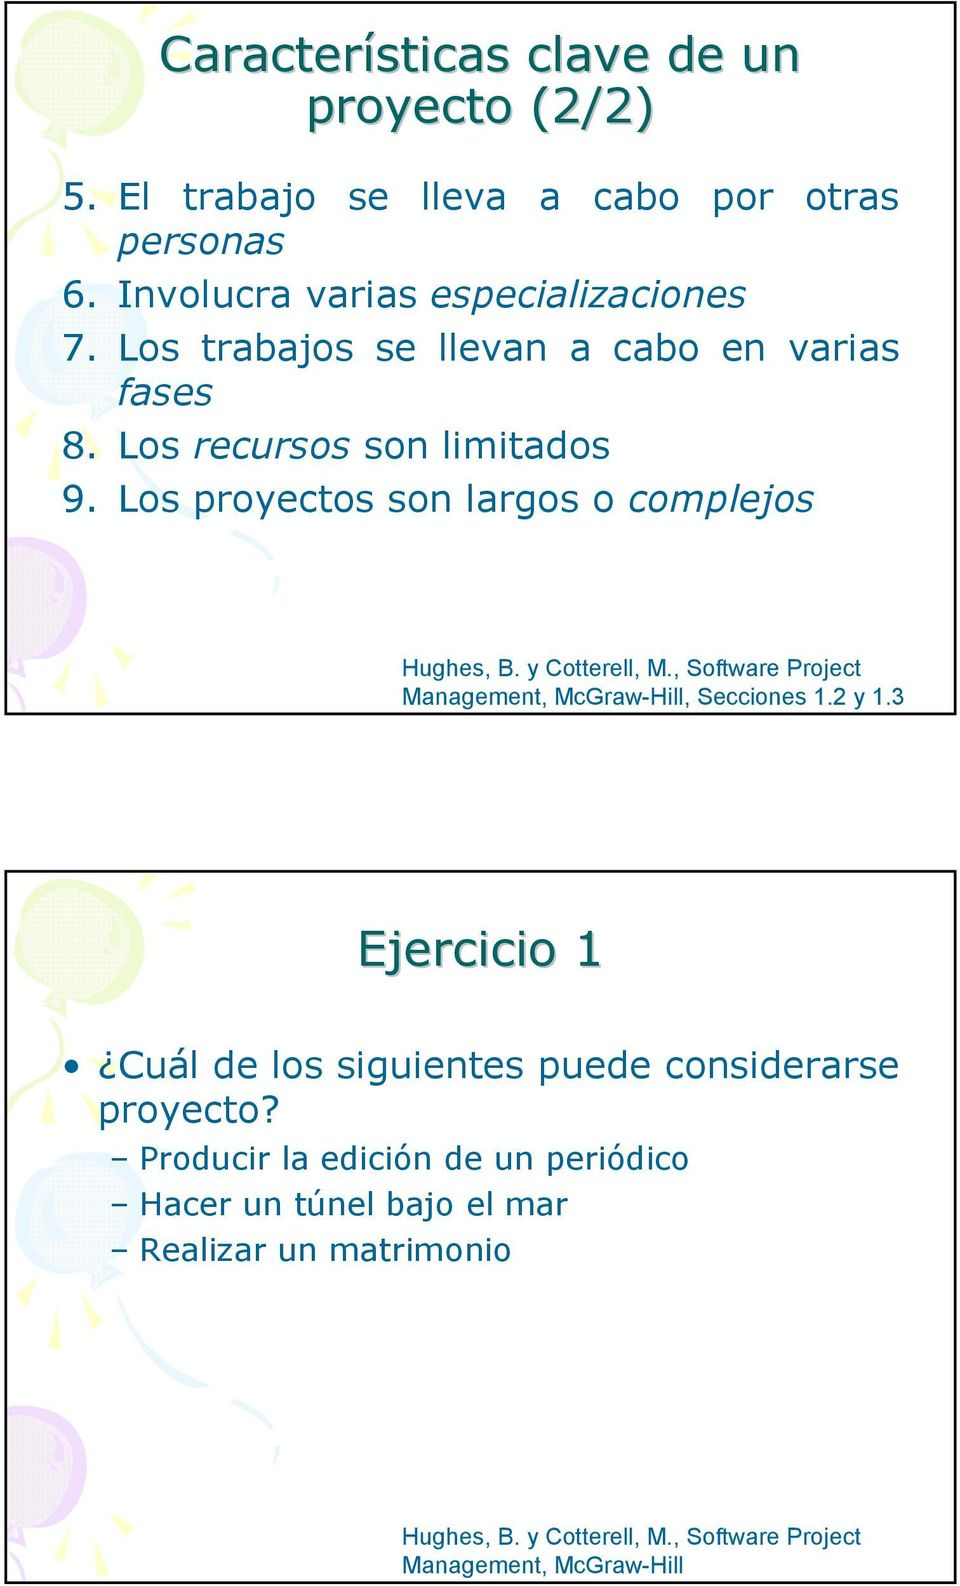 y Cotterell, M., Software Project Management, McGraw-Hill, Secciones 1.2 y 1.